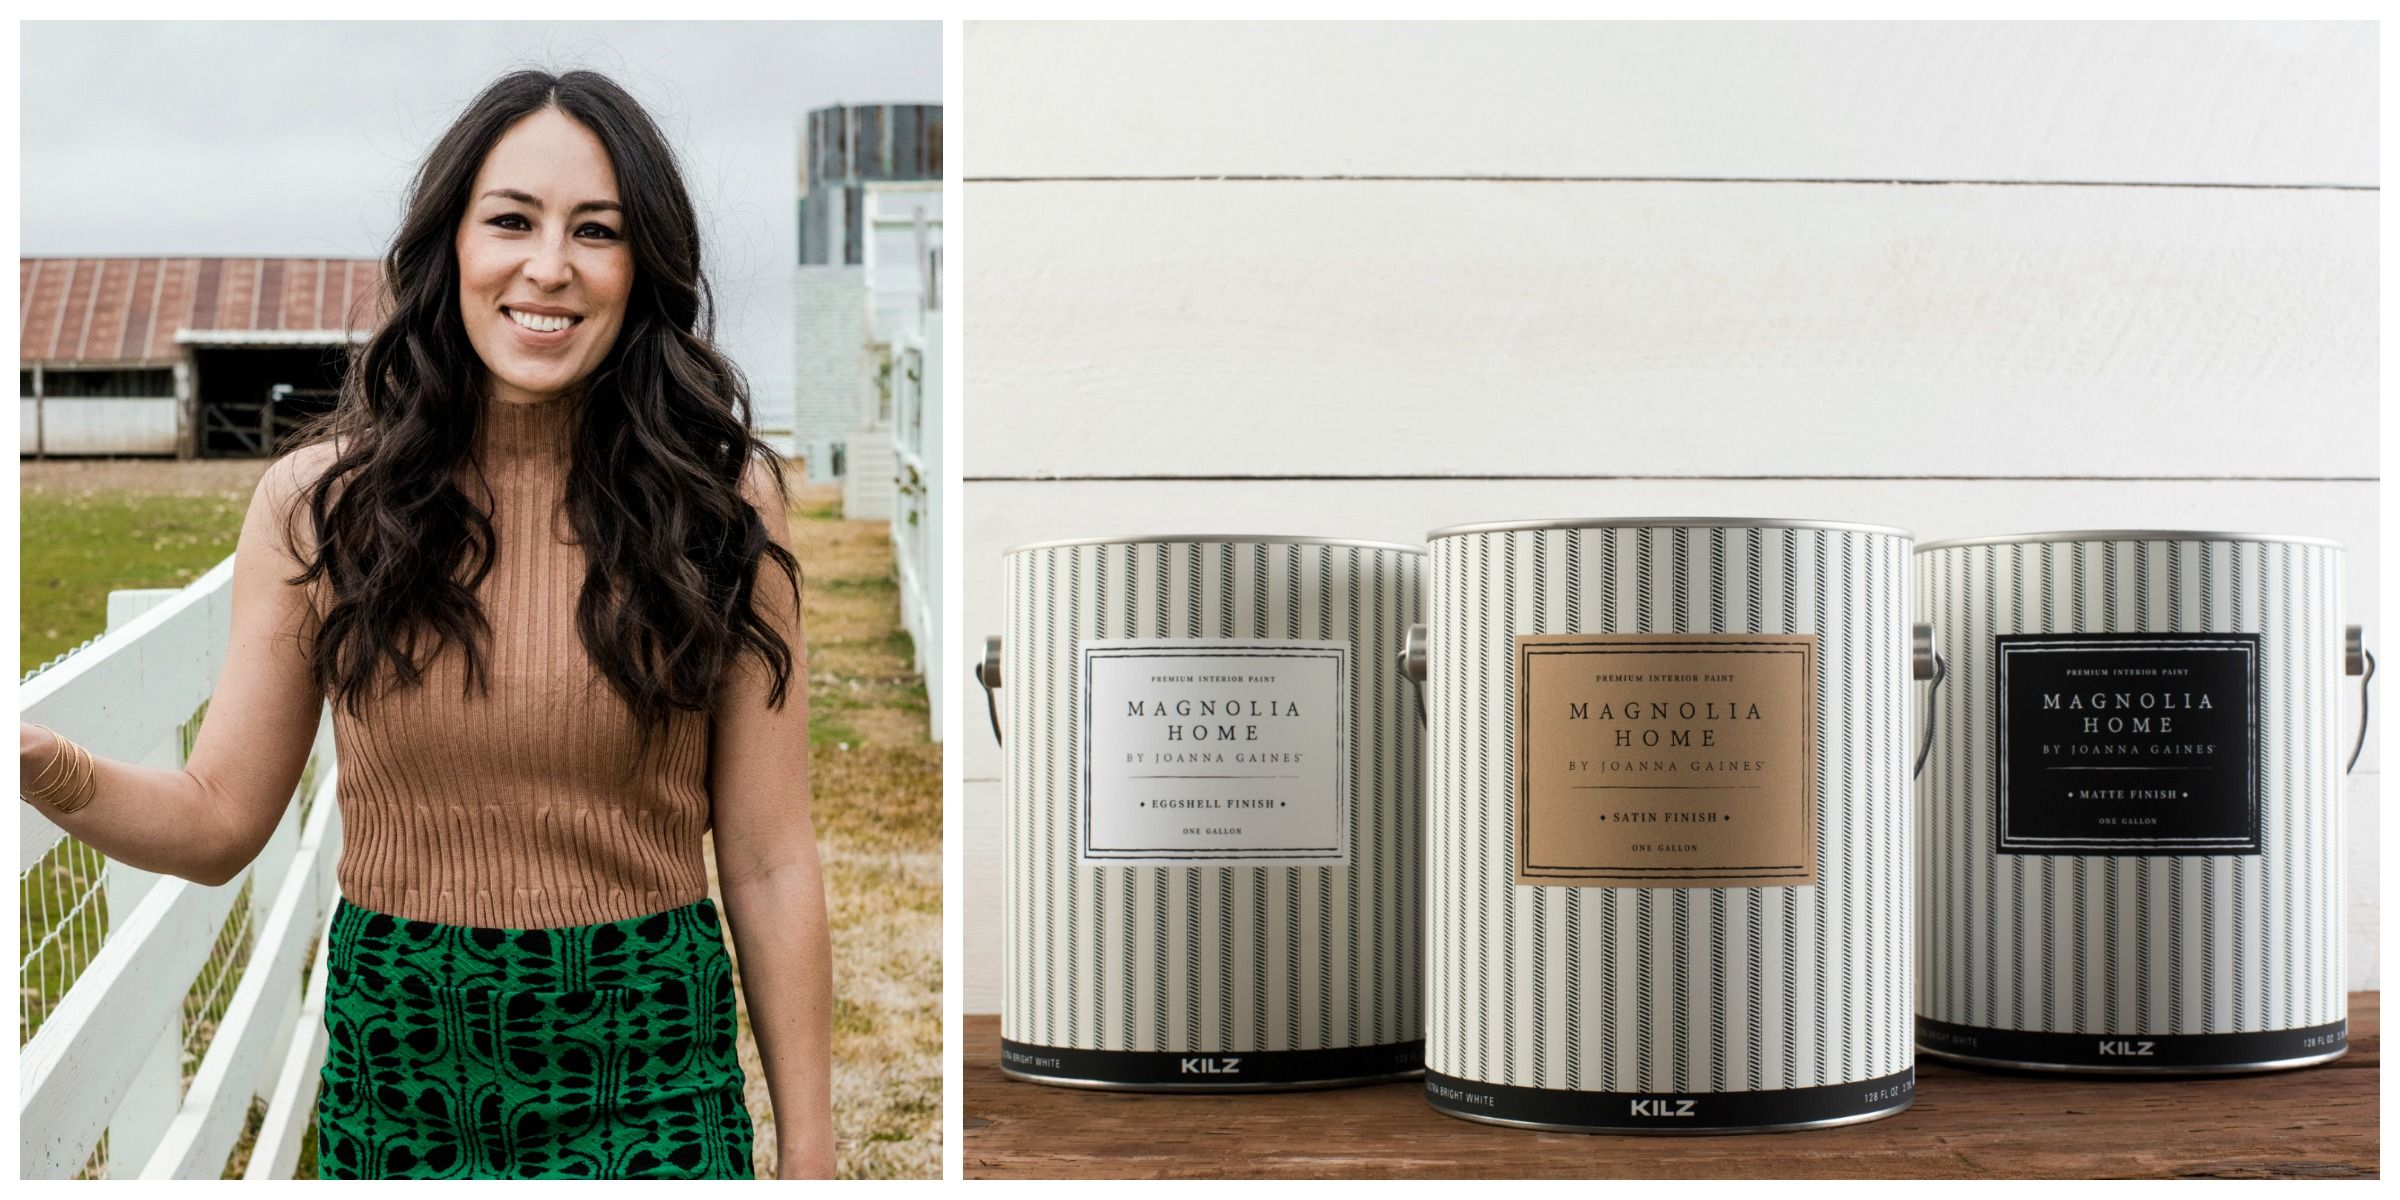 Joanna Gaines Paint Collection - Magnolia Home